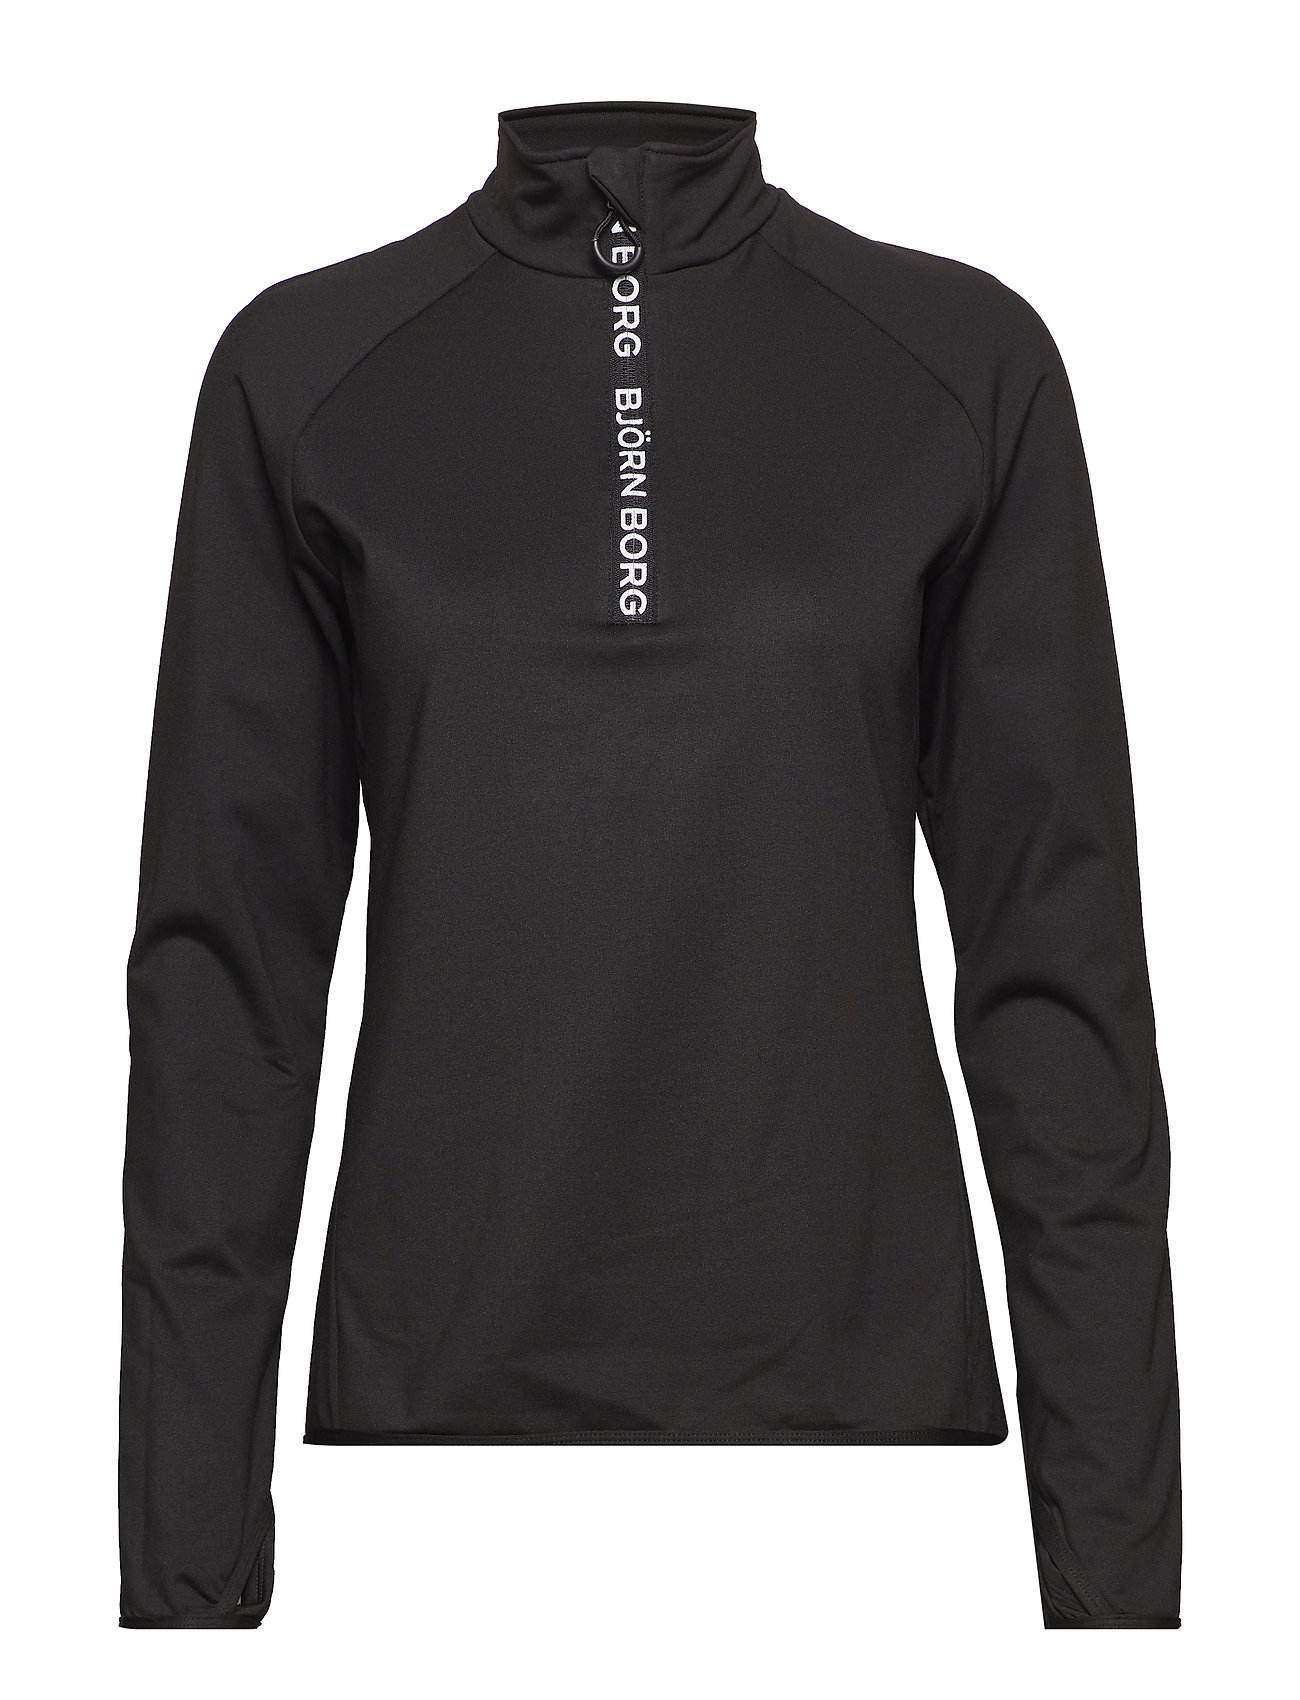 Björn Borg HALF ZIP POLO CHRISTA CHRISTA - BLACK BEAUTY